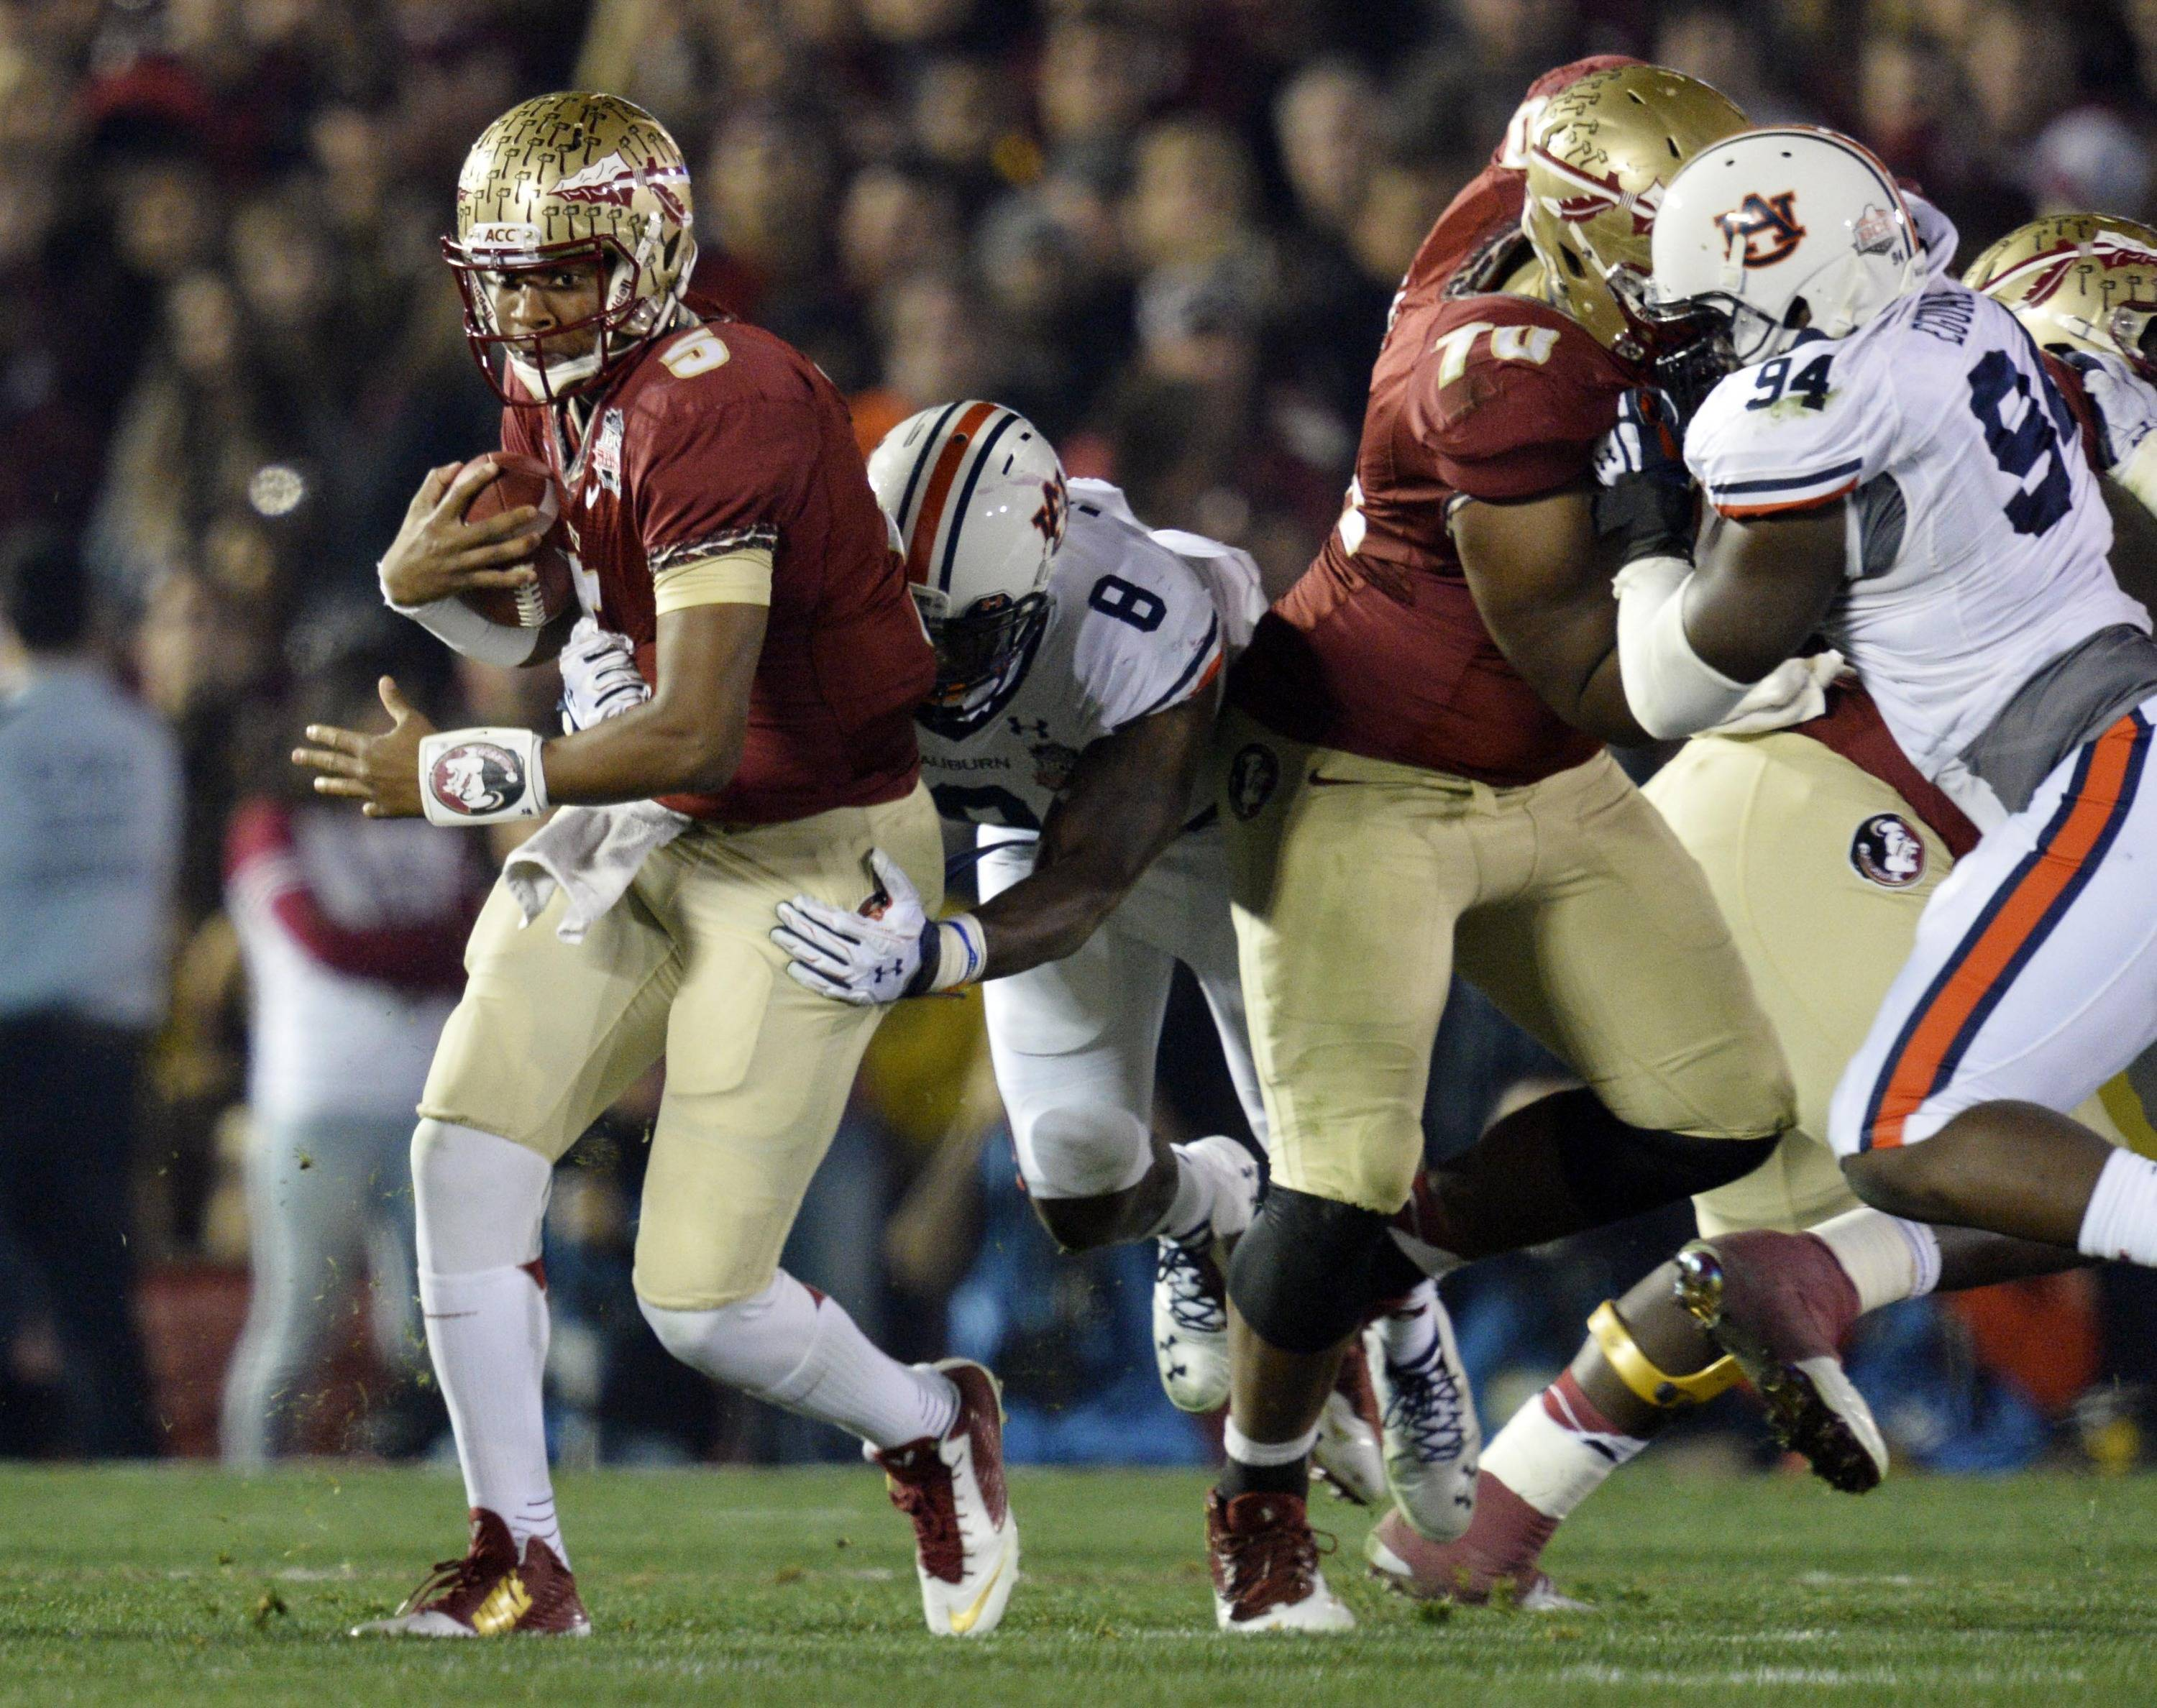 Jan 6, 2014; Pasadena, CA, USA; Florida State Seminoles quarterback Jameis Winston (5) is tackled by Auburn Tigers linebacker Cassanova McKinzy (8) during the first half of the 2014 BCS National Championship game at the Rose Bowl.  Mandatory Credit: Robert Hanashiro-USA TODAY Sports